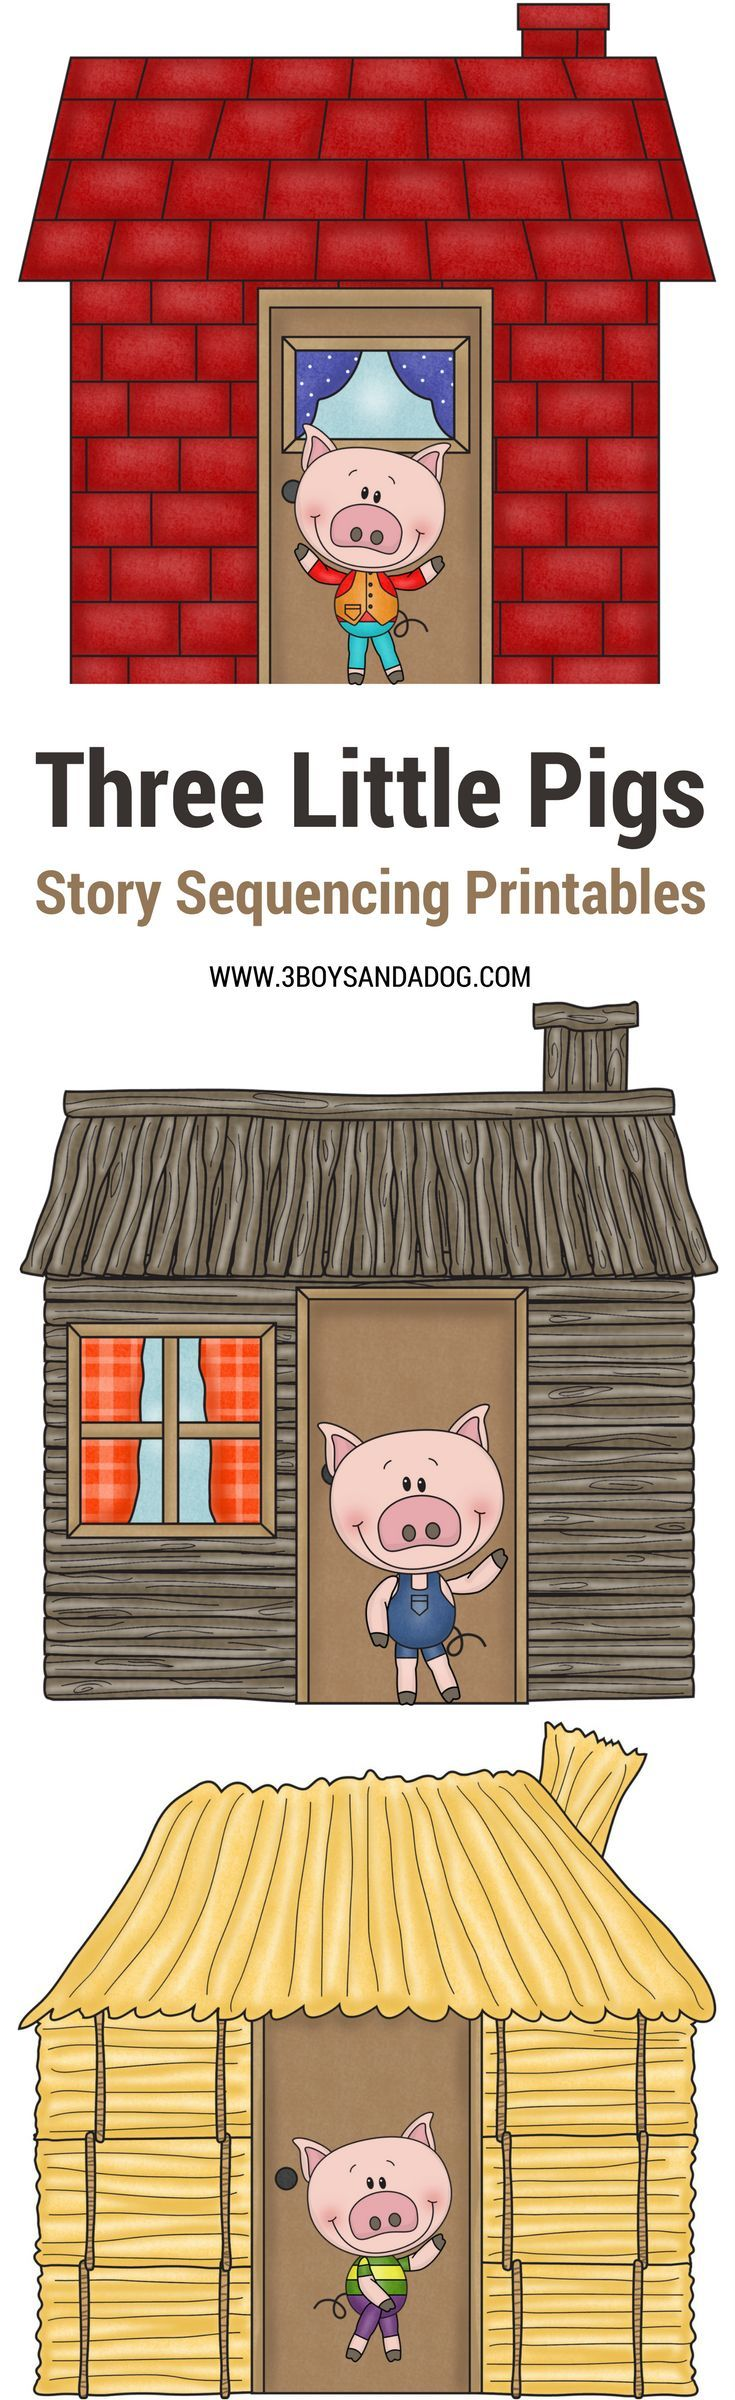 Selective image throughout 3 little pigs story printable